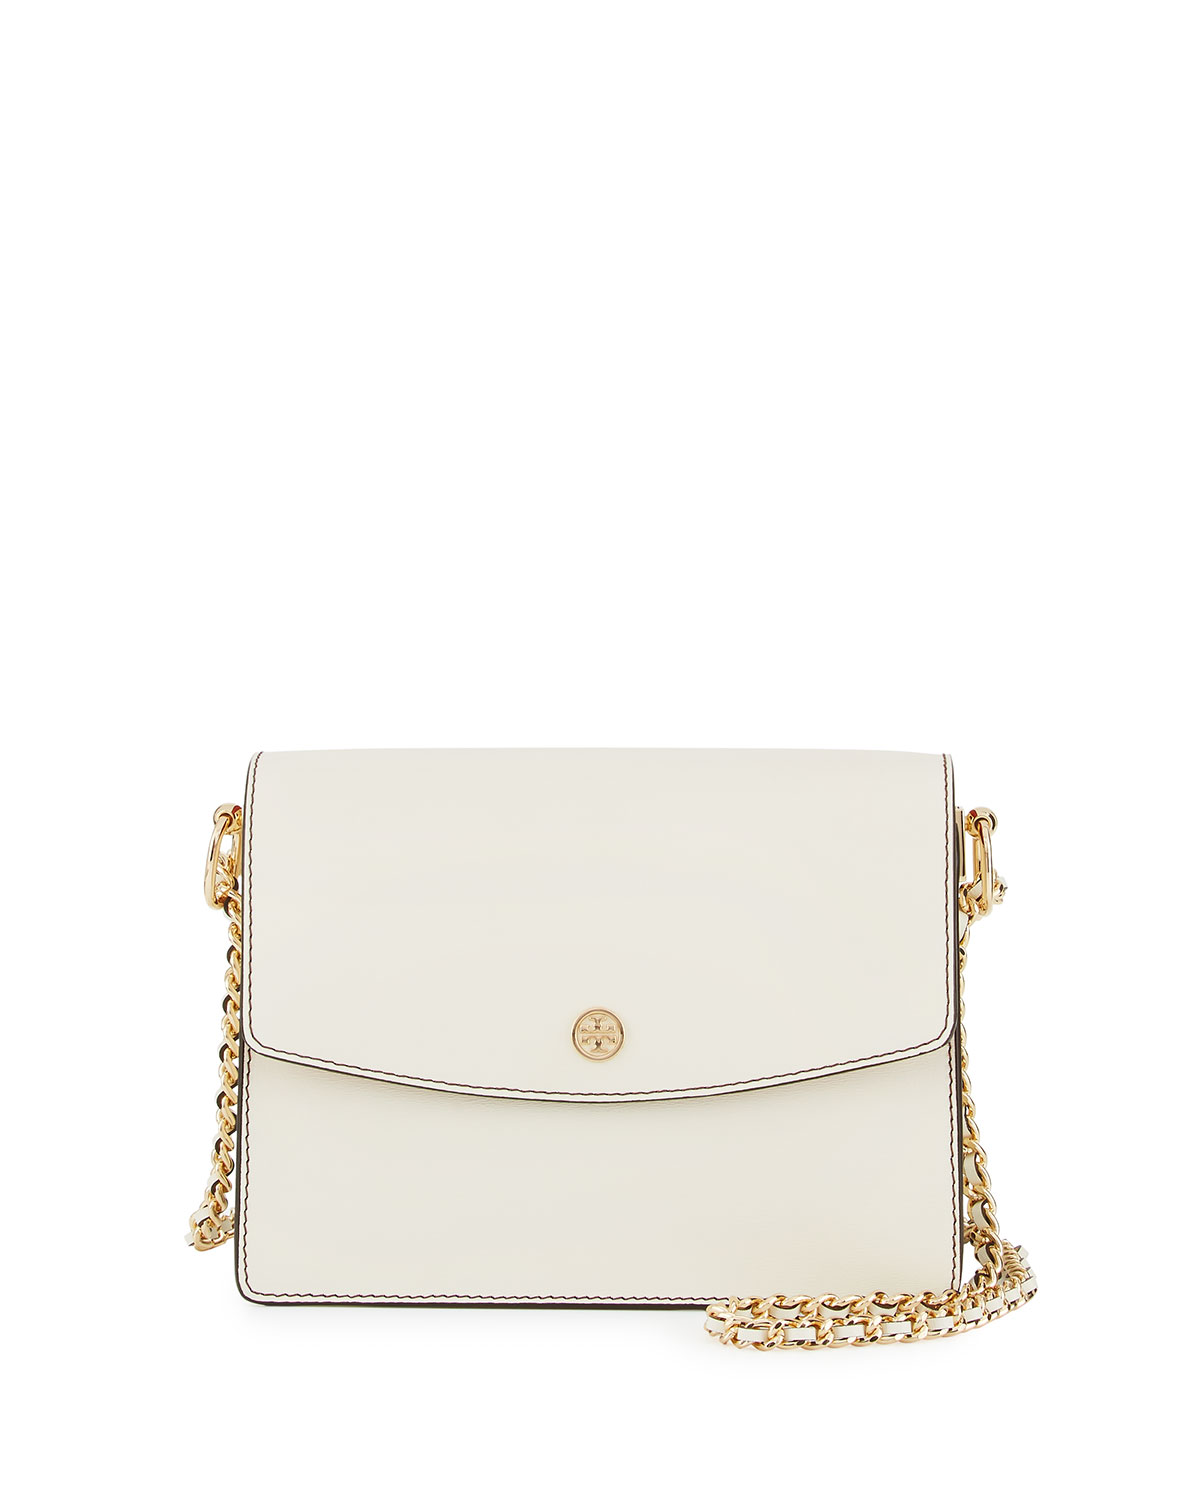 c24b0aa29 Tory Burch Parker Leather Convertible Shoulder Bag | Neiman Marcus